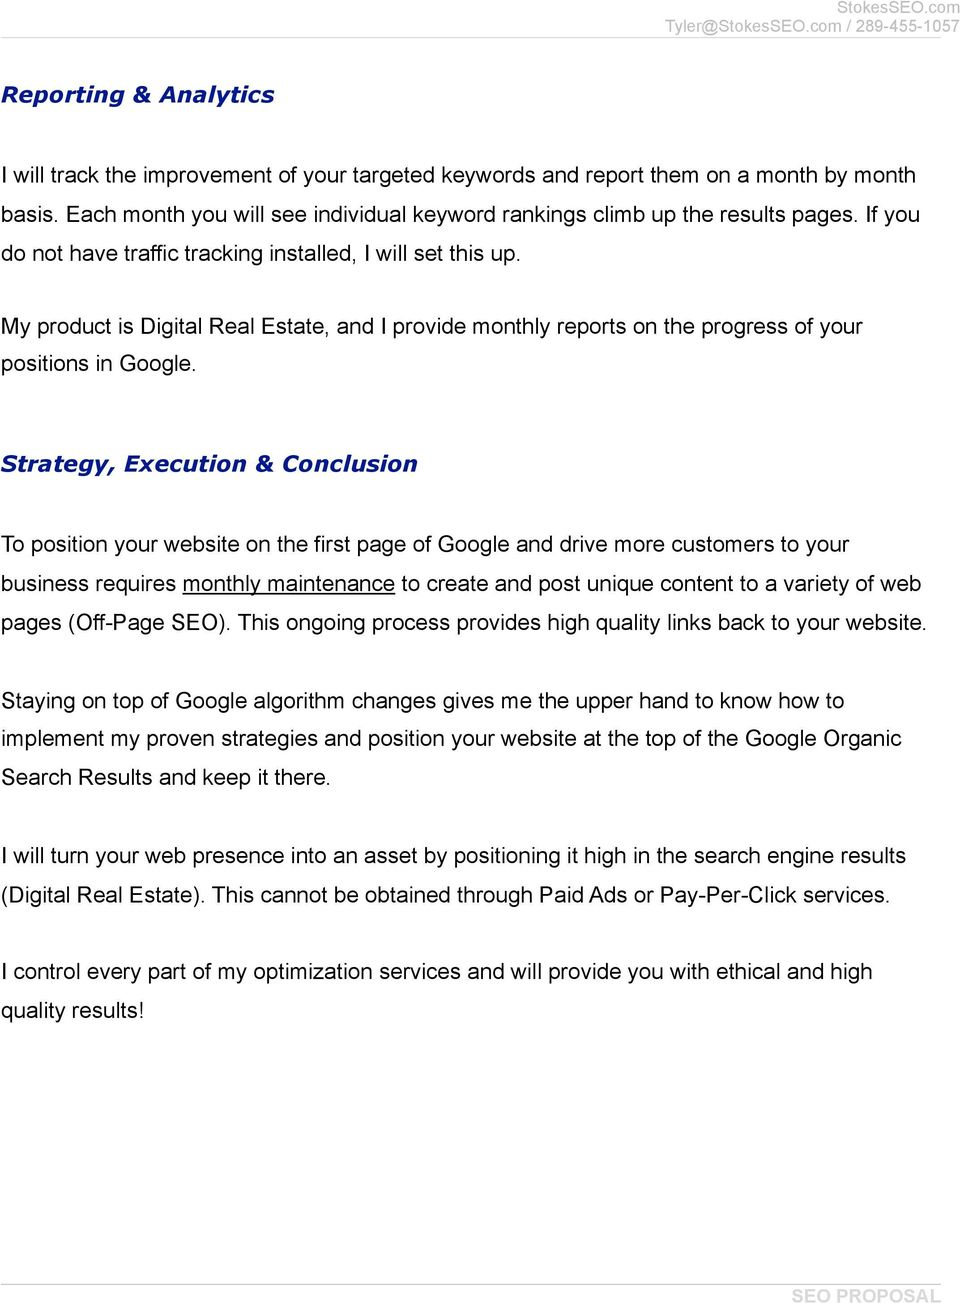 Strategy, Execution & Conclusion To position your website on the first page of Google and drive more customers to your business requires monthly maintenance to create and post unique content to a